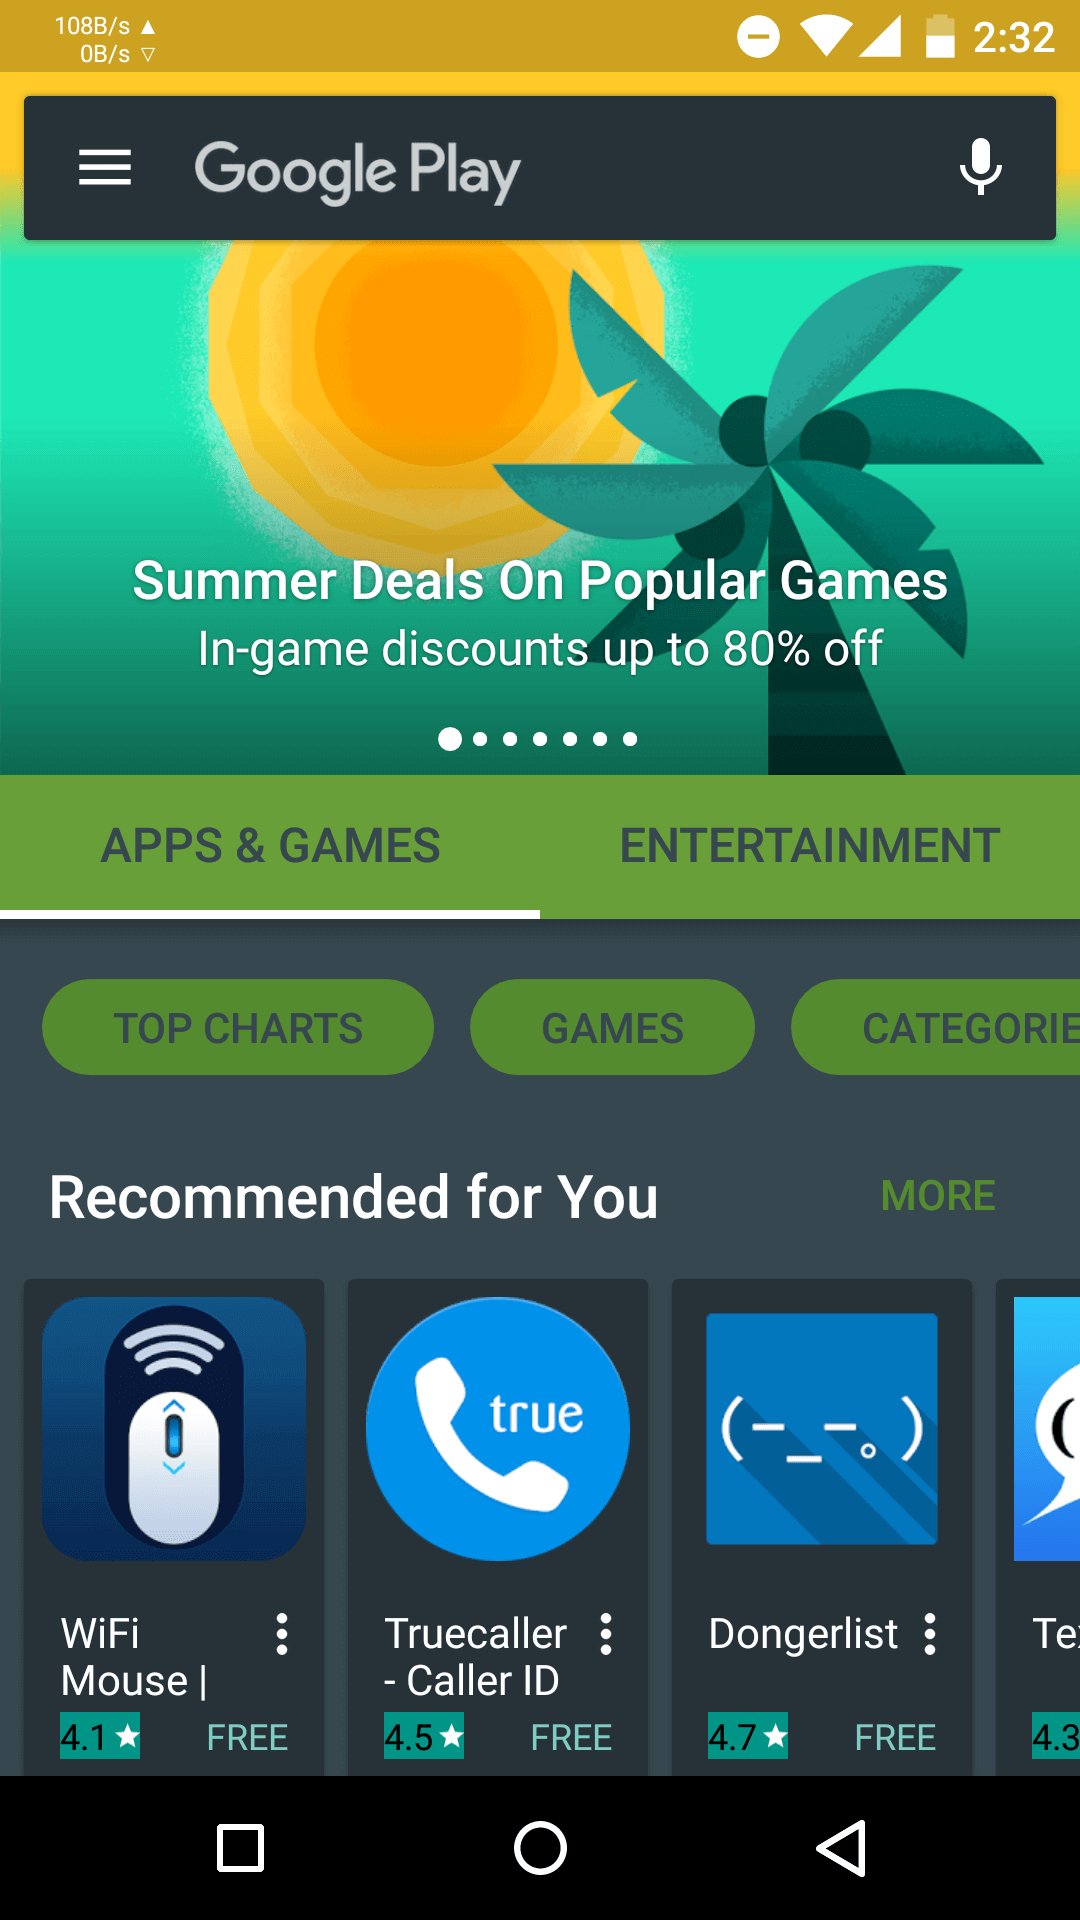 Open Playstore